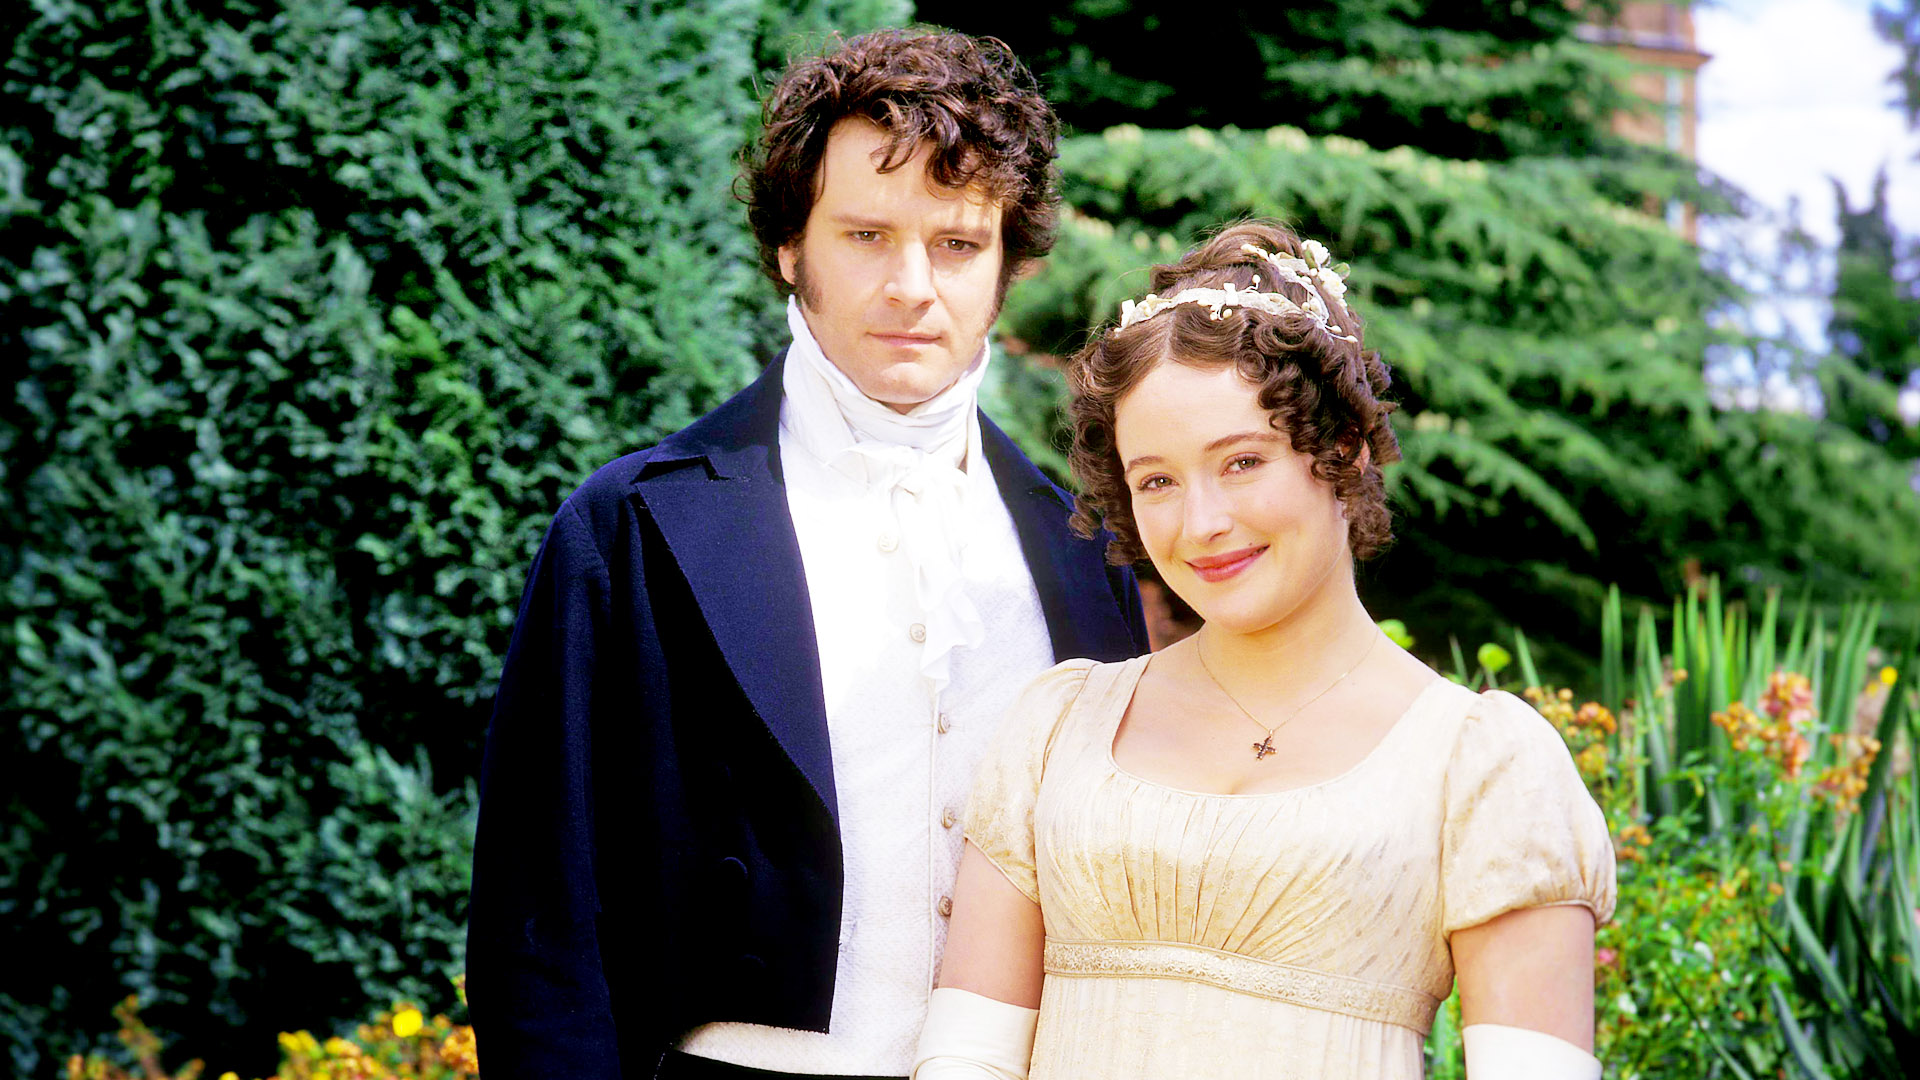 the romantic and familial relations of elizabeth bennett in pride and prejudice a novel by jane aust Jane austen's pride and prejudice, first published in 1813, is considered her best novel it continues to be a fertile source of material for television and film adaptations first marketed as a romance, pride and prejudice might today be labeled a romantic comedy.